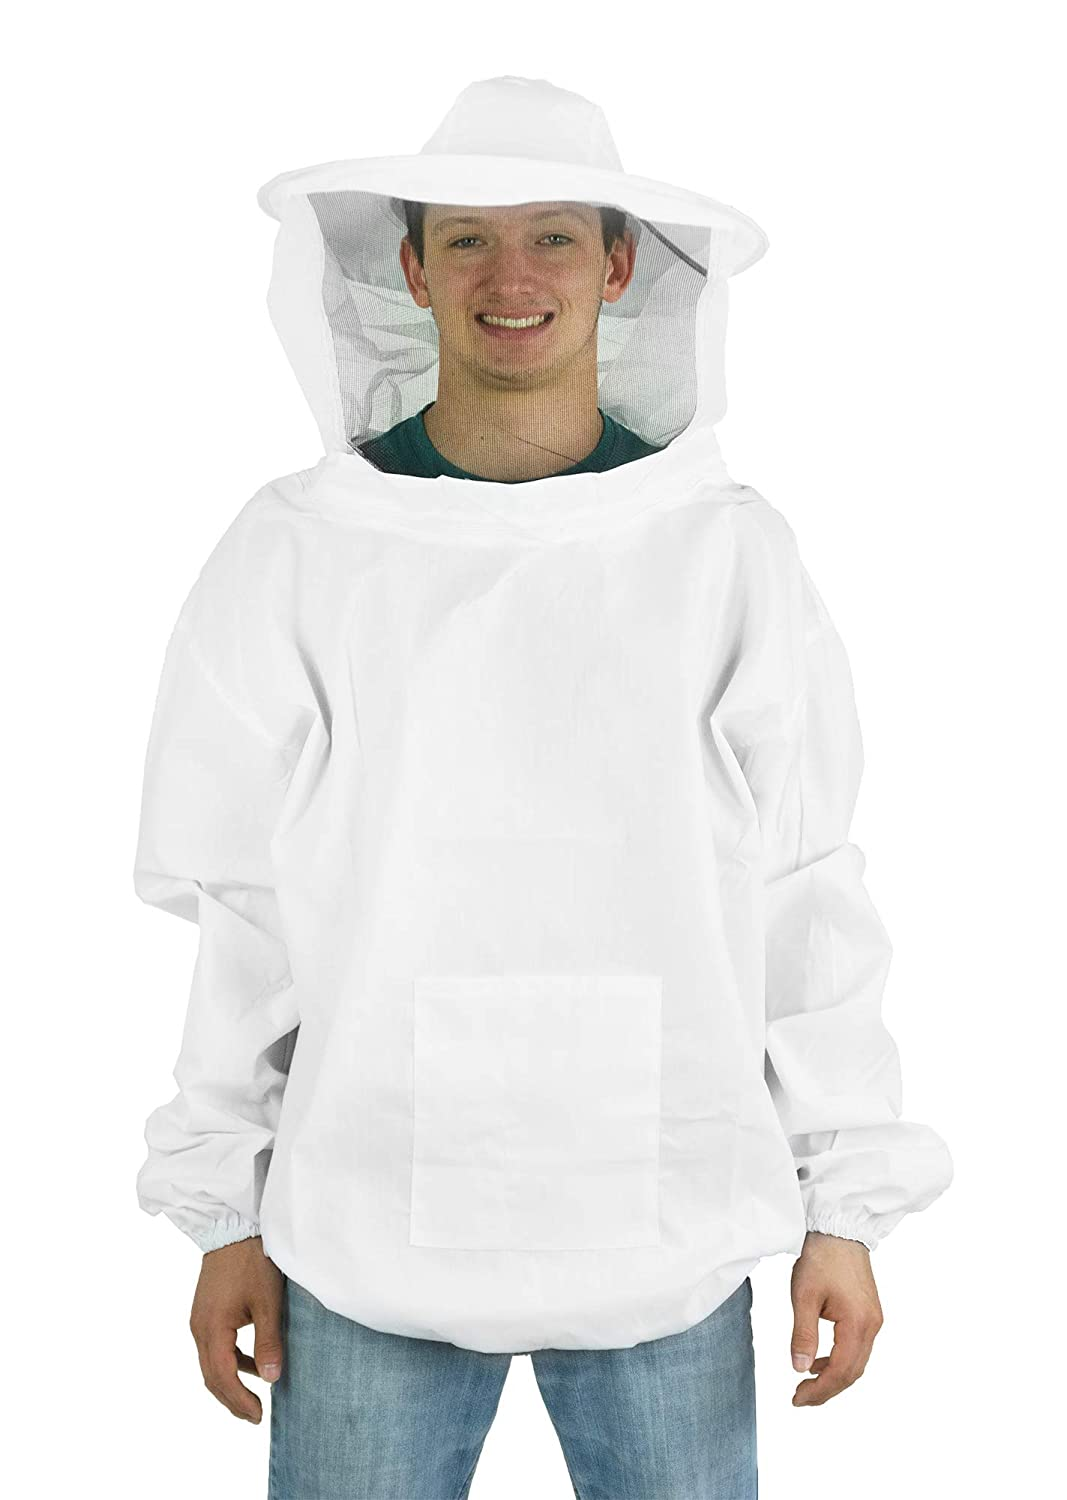 New Professional White Medium/Large Beekeeping/Bee Keeping Suit, Jacket, Pull Over, Smock with a Veil by VIVO (BEE-V105)